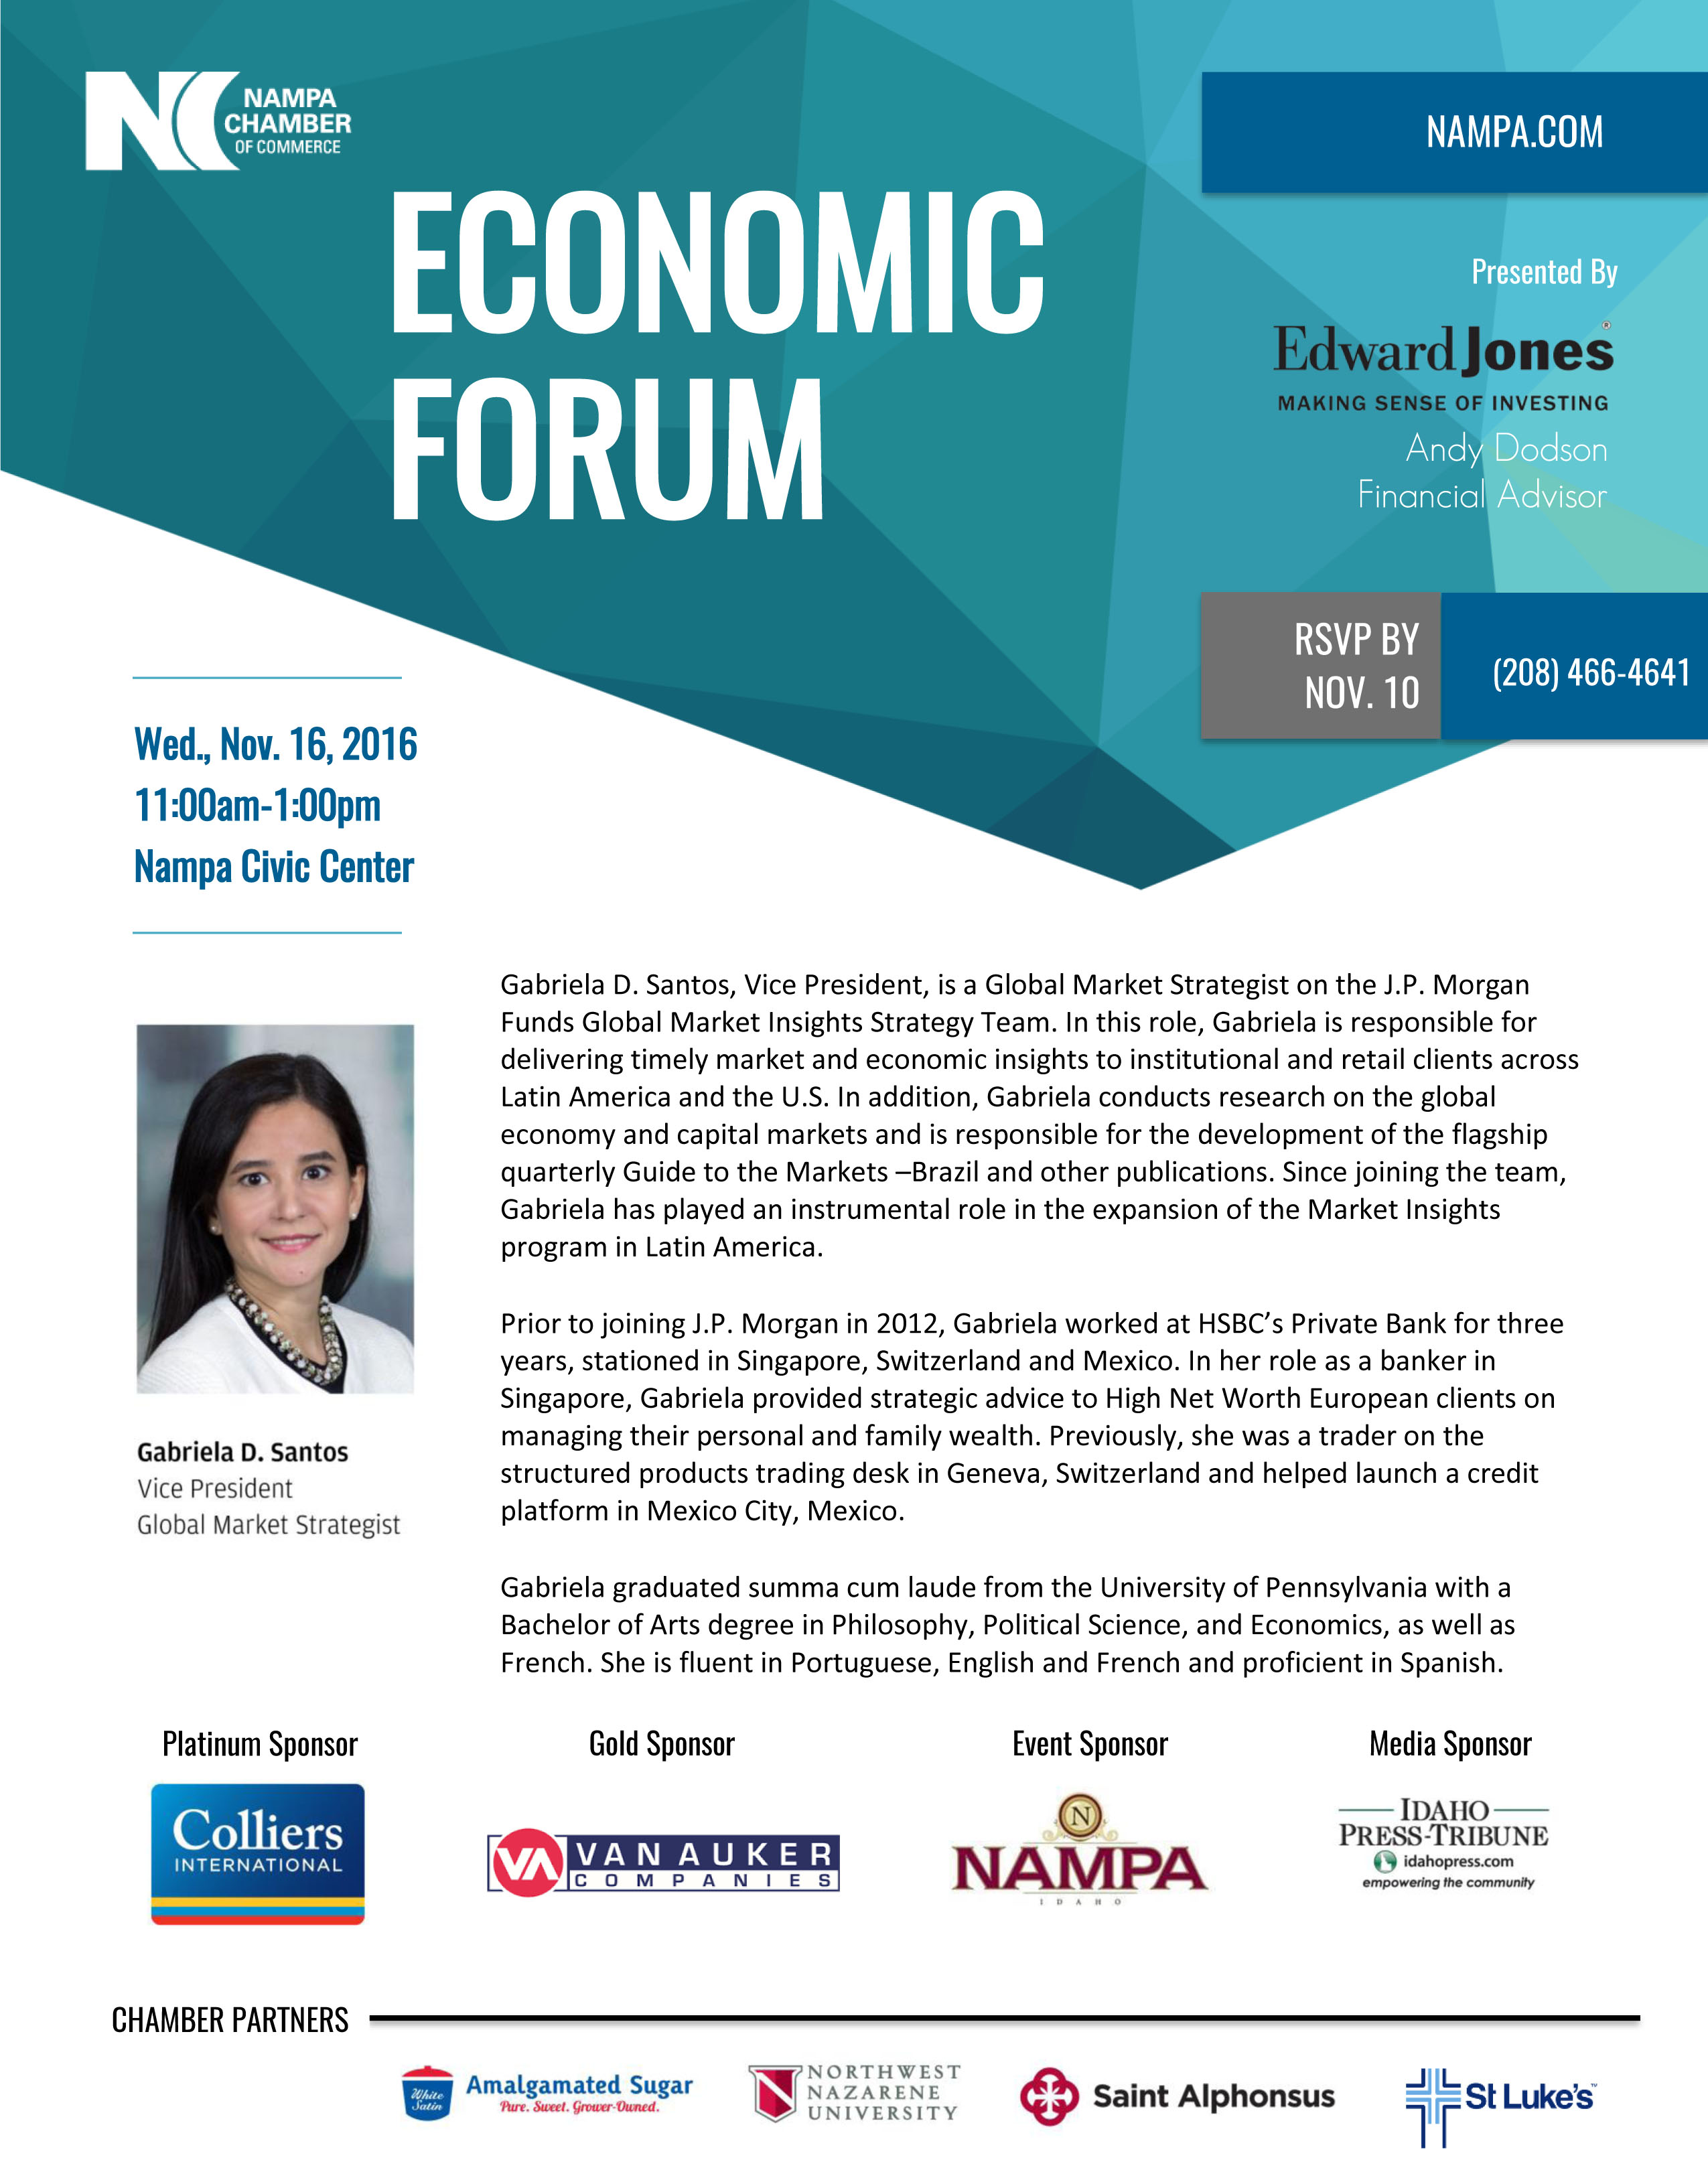 ECONOMIC FORUM 2016 presented by edward jones andy dodson nampa chamber of commerce